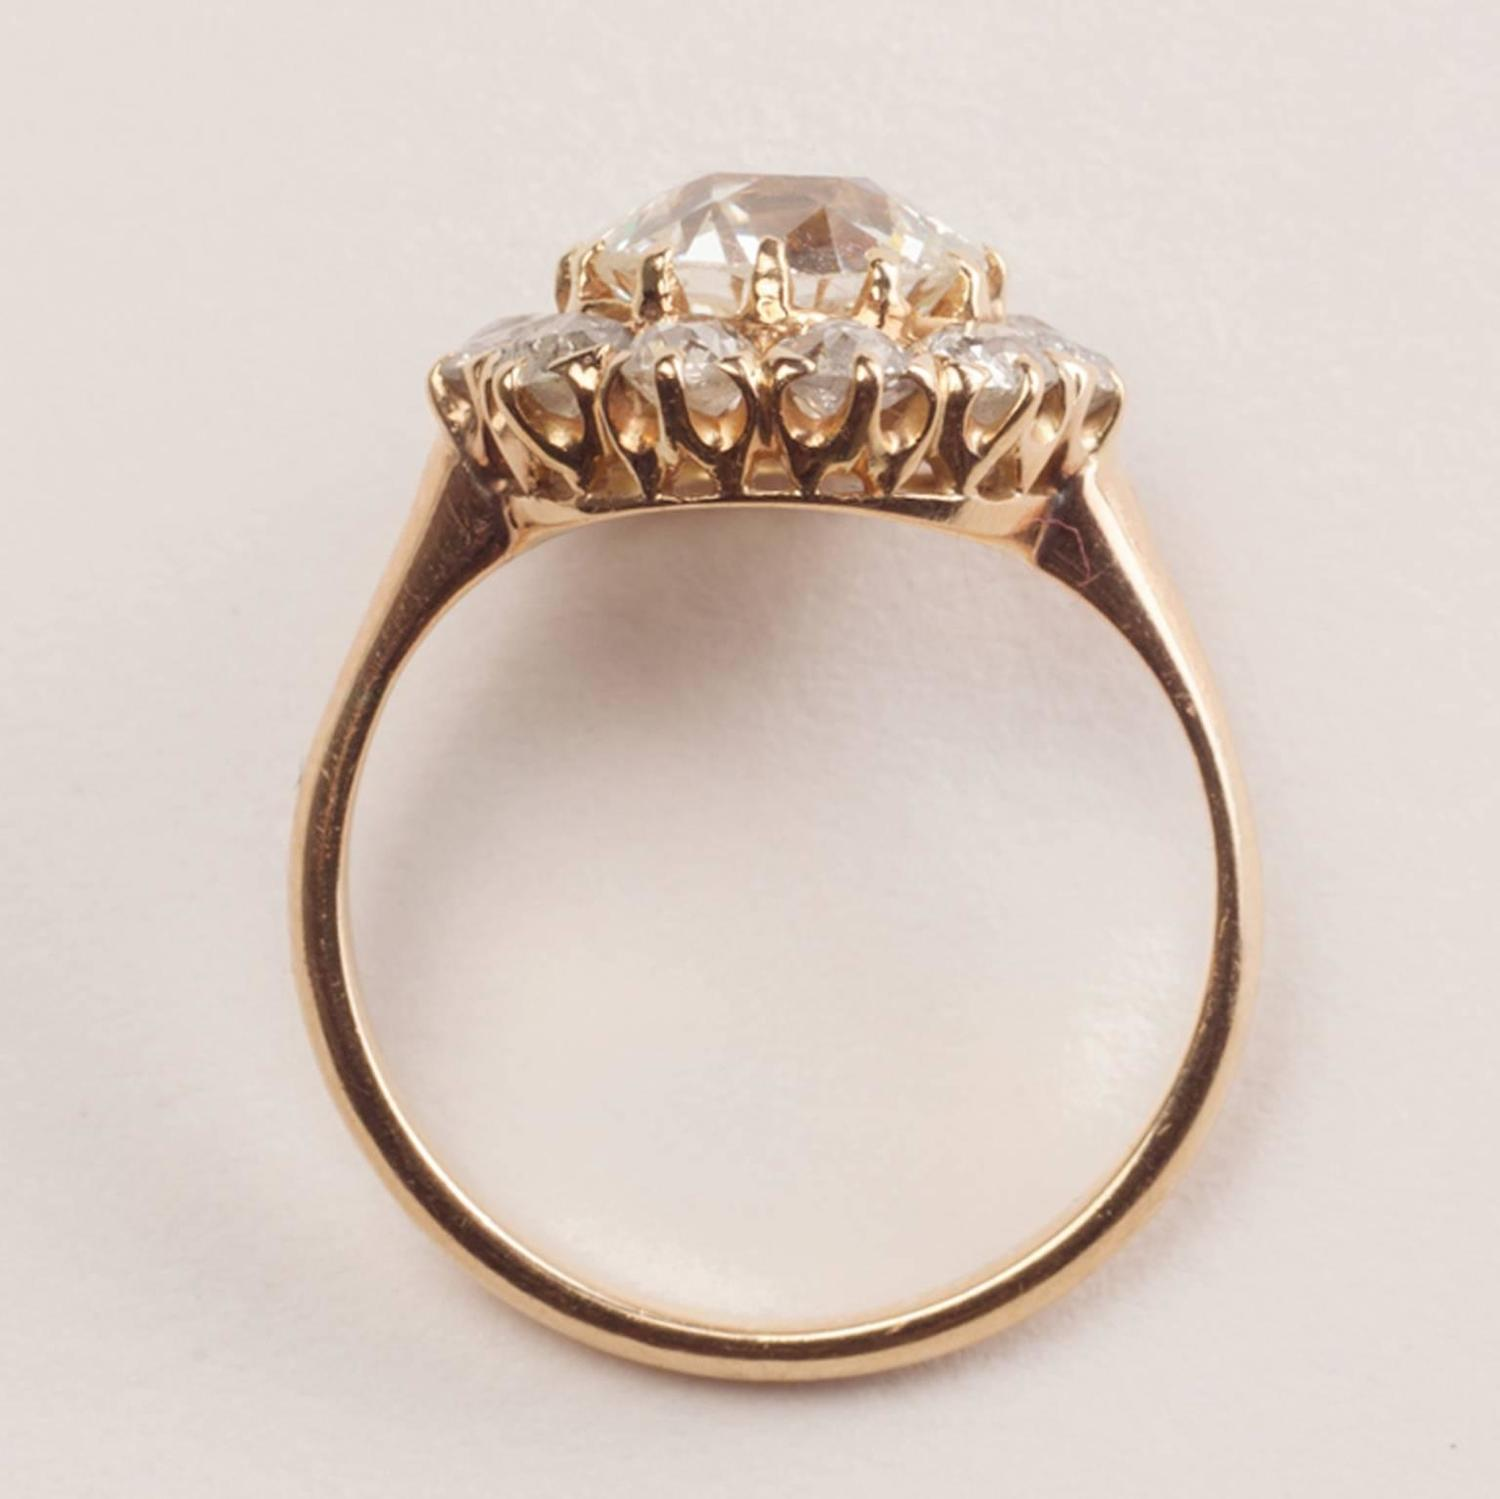 Antique Diamond Gold Cluster Ring For Sale at 1stdibs